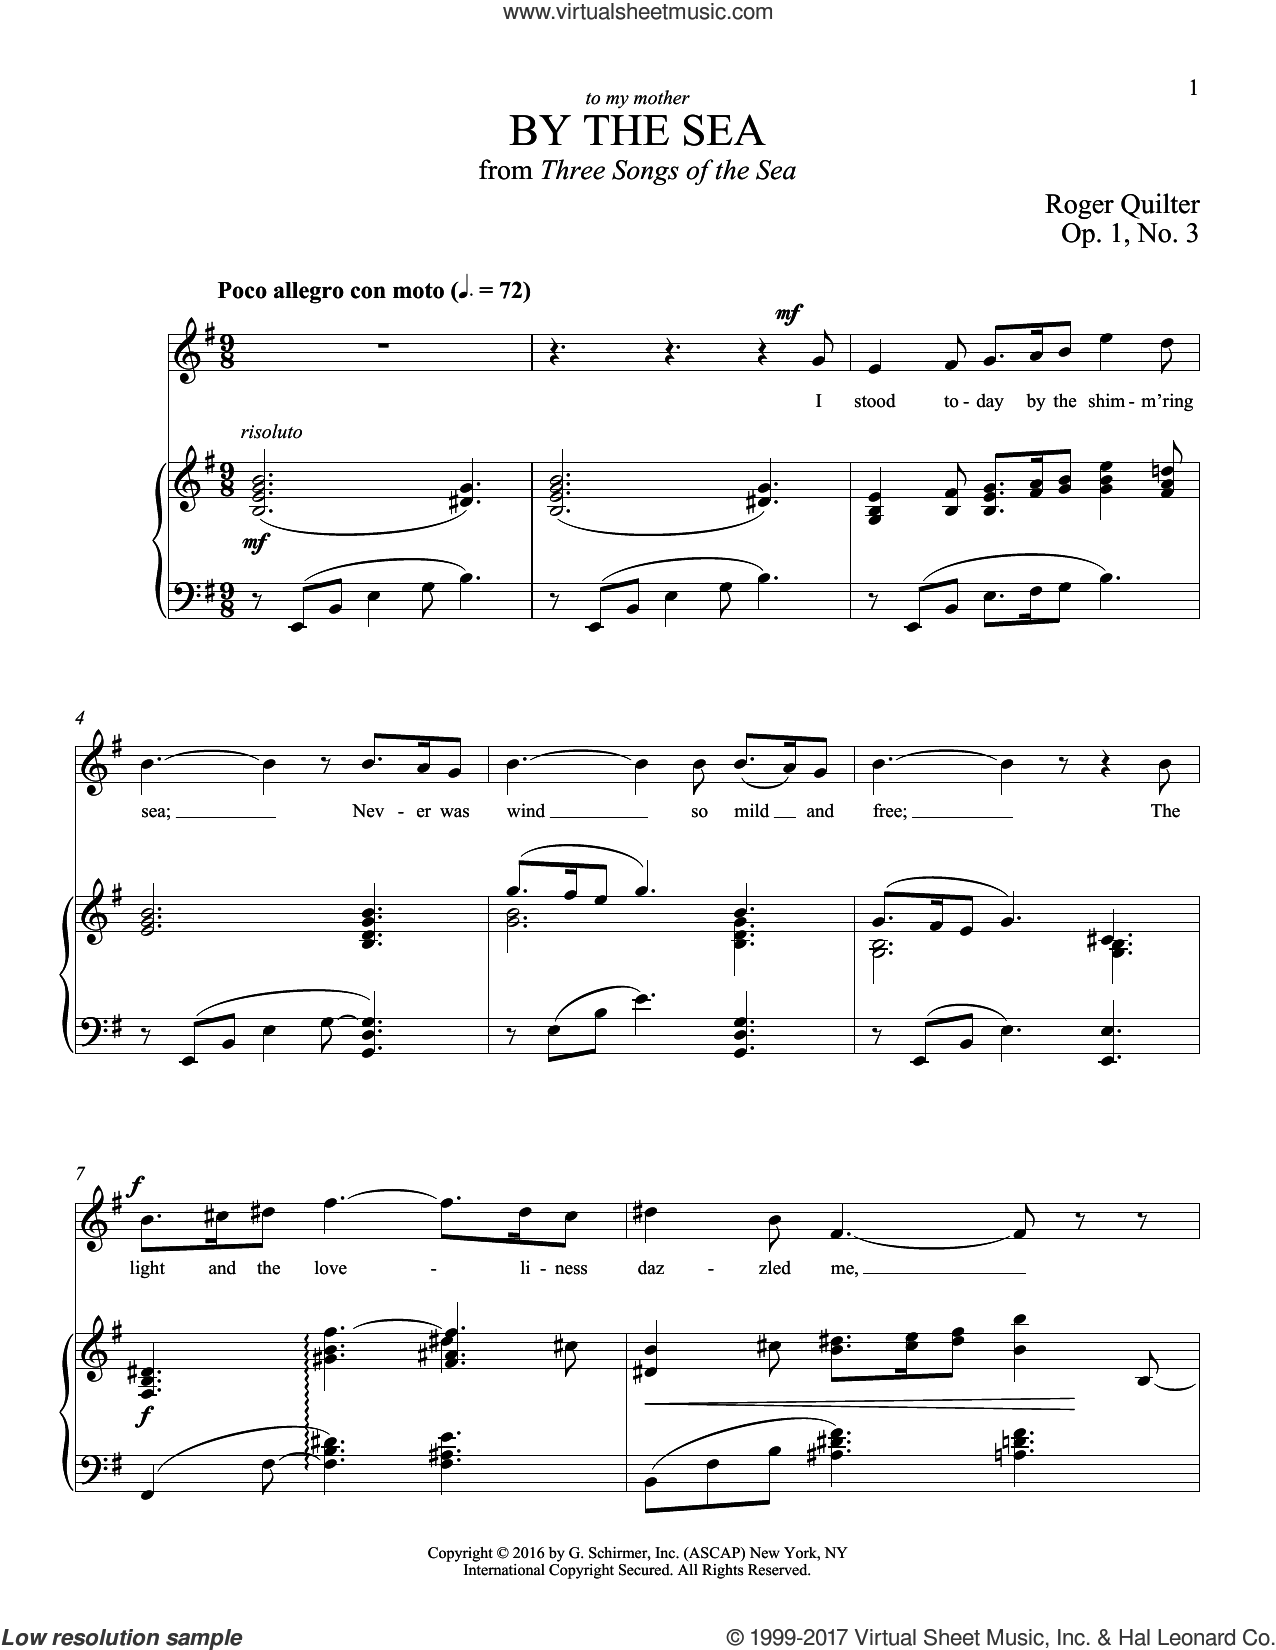 By The Sea sheet music for voice and piano (Tenor) by Roger Quilter, intermediate voice. Score Image Preview.